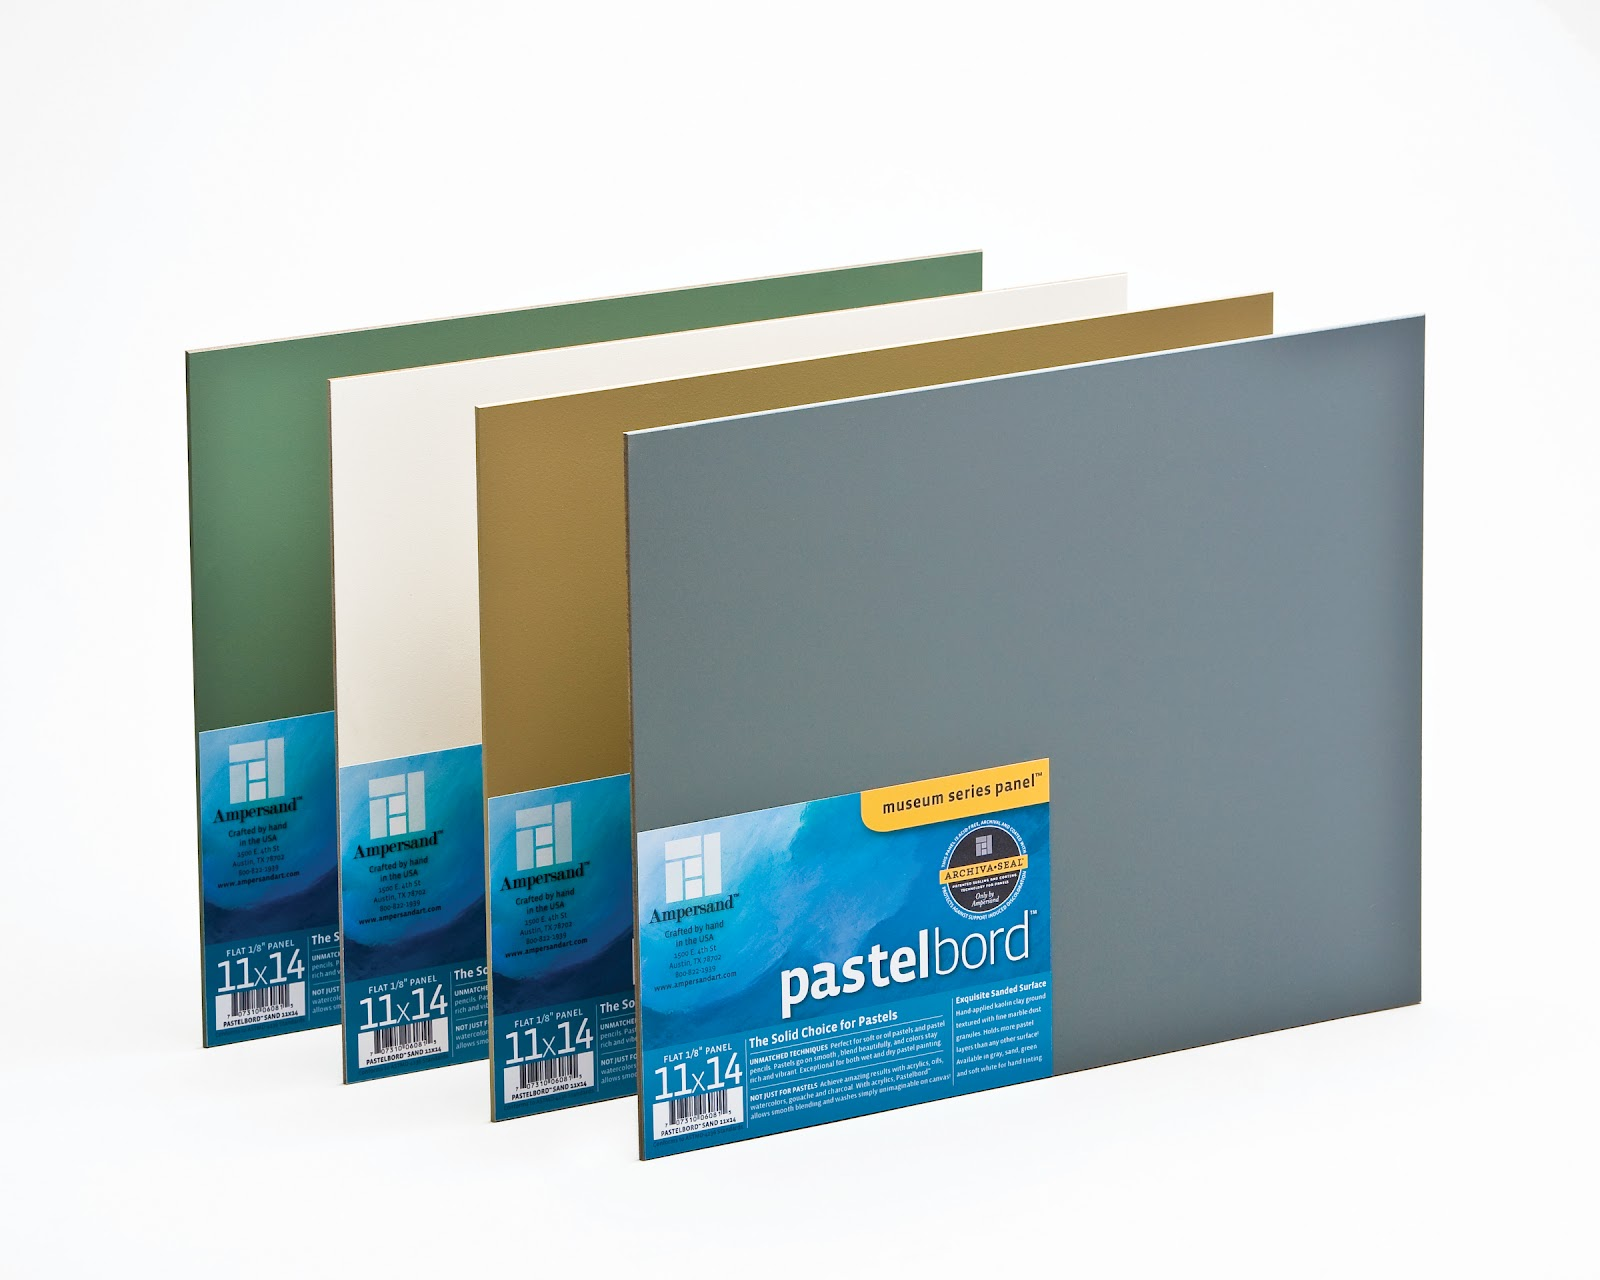 5 Essential Tools For Pastel Painting